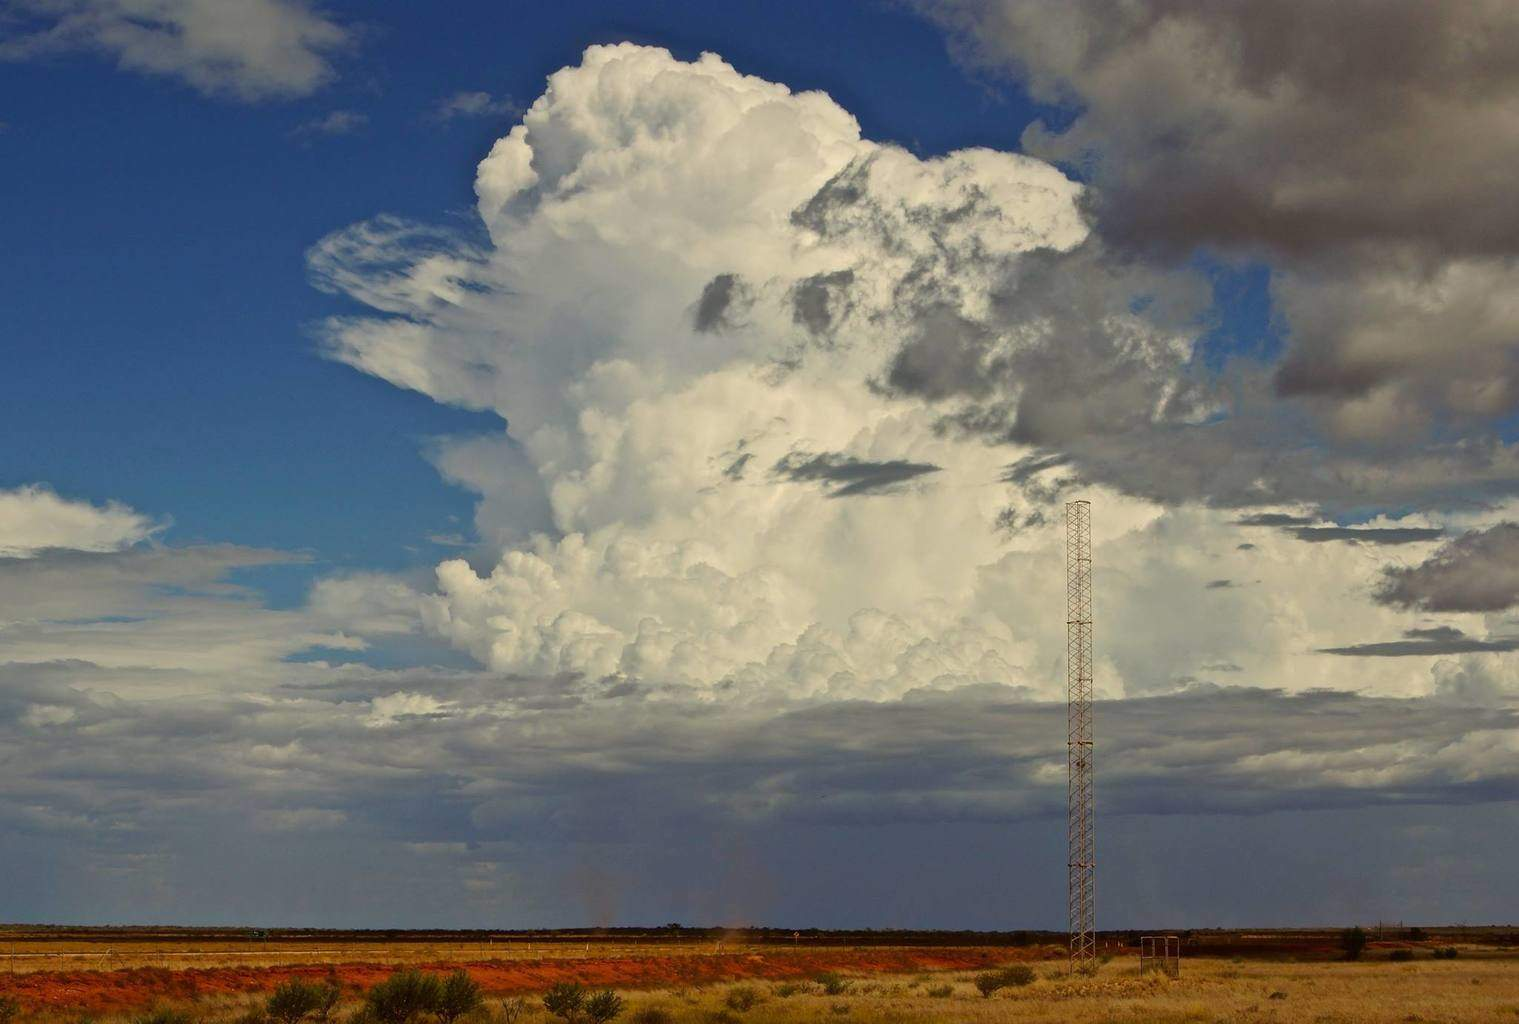 Building thunderstorm near Learmonth, Western Australia during the cyclone season earlier this year. Dust devils swirled up below & in front of it for hours. Lots of rumbles.